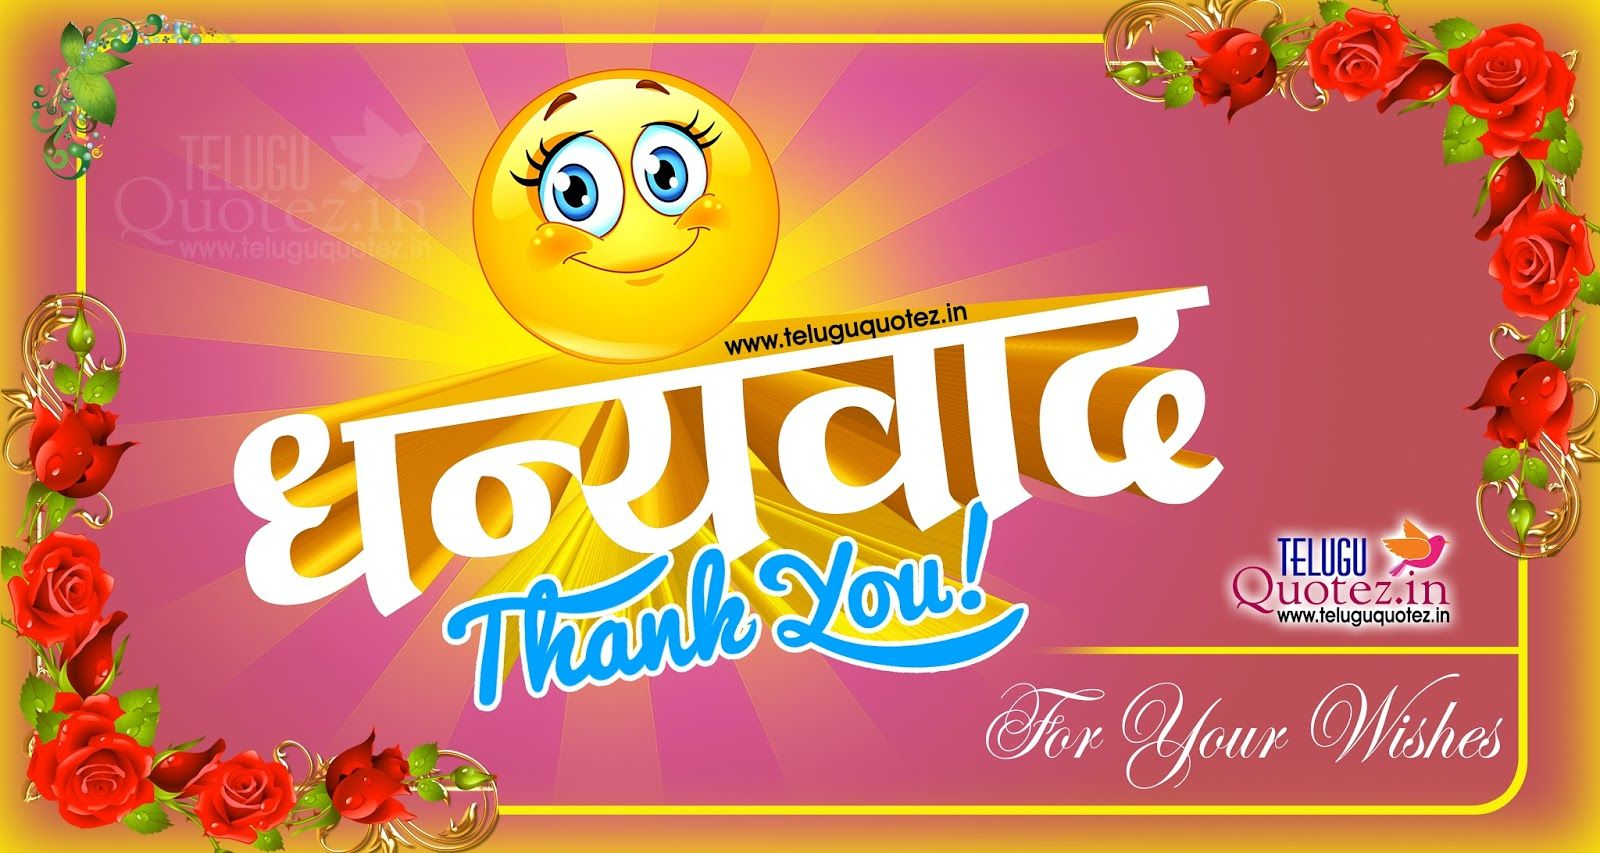 Thank You Hindi Shayari Quotes For Birthday Wishes Teluguquotez